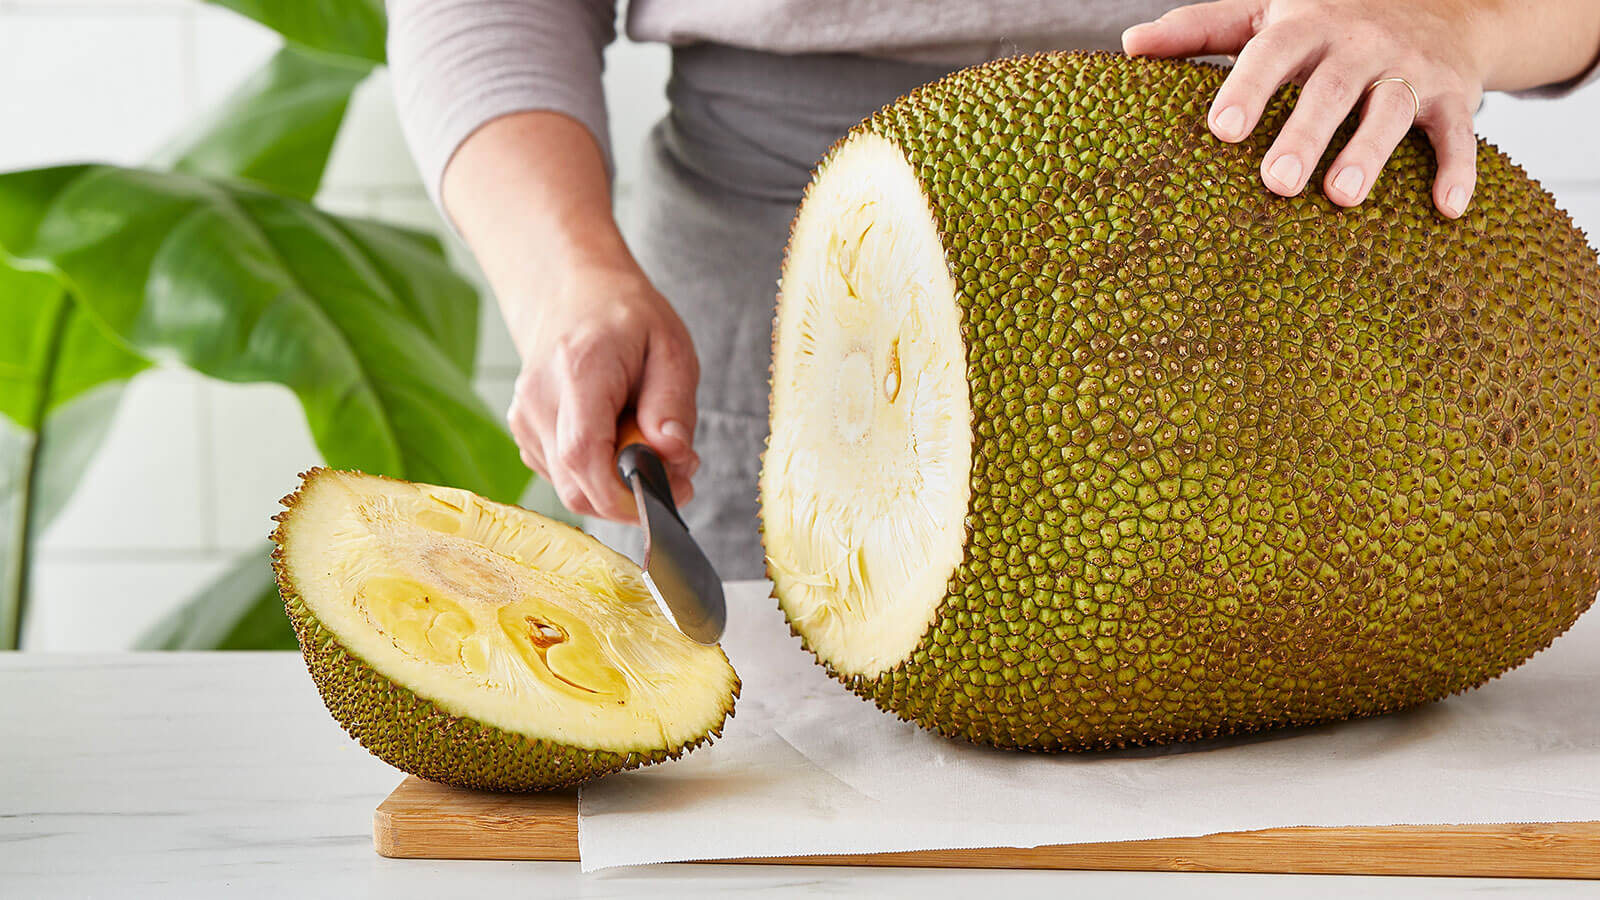 step-1 cut ends off of jackfruit